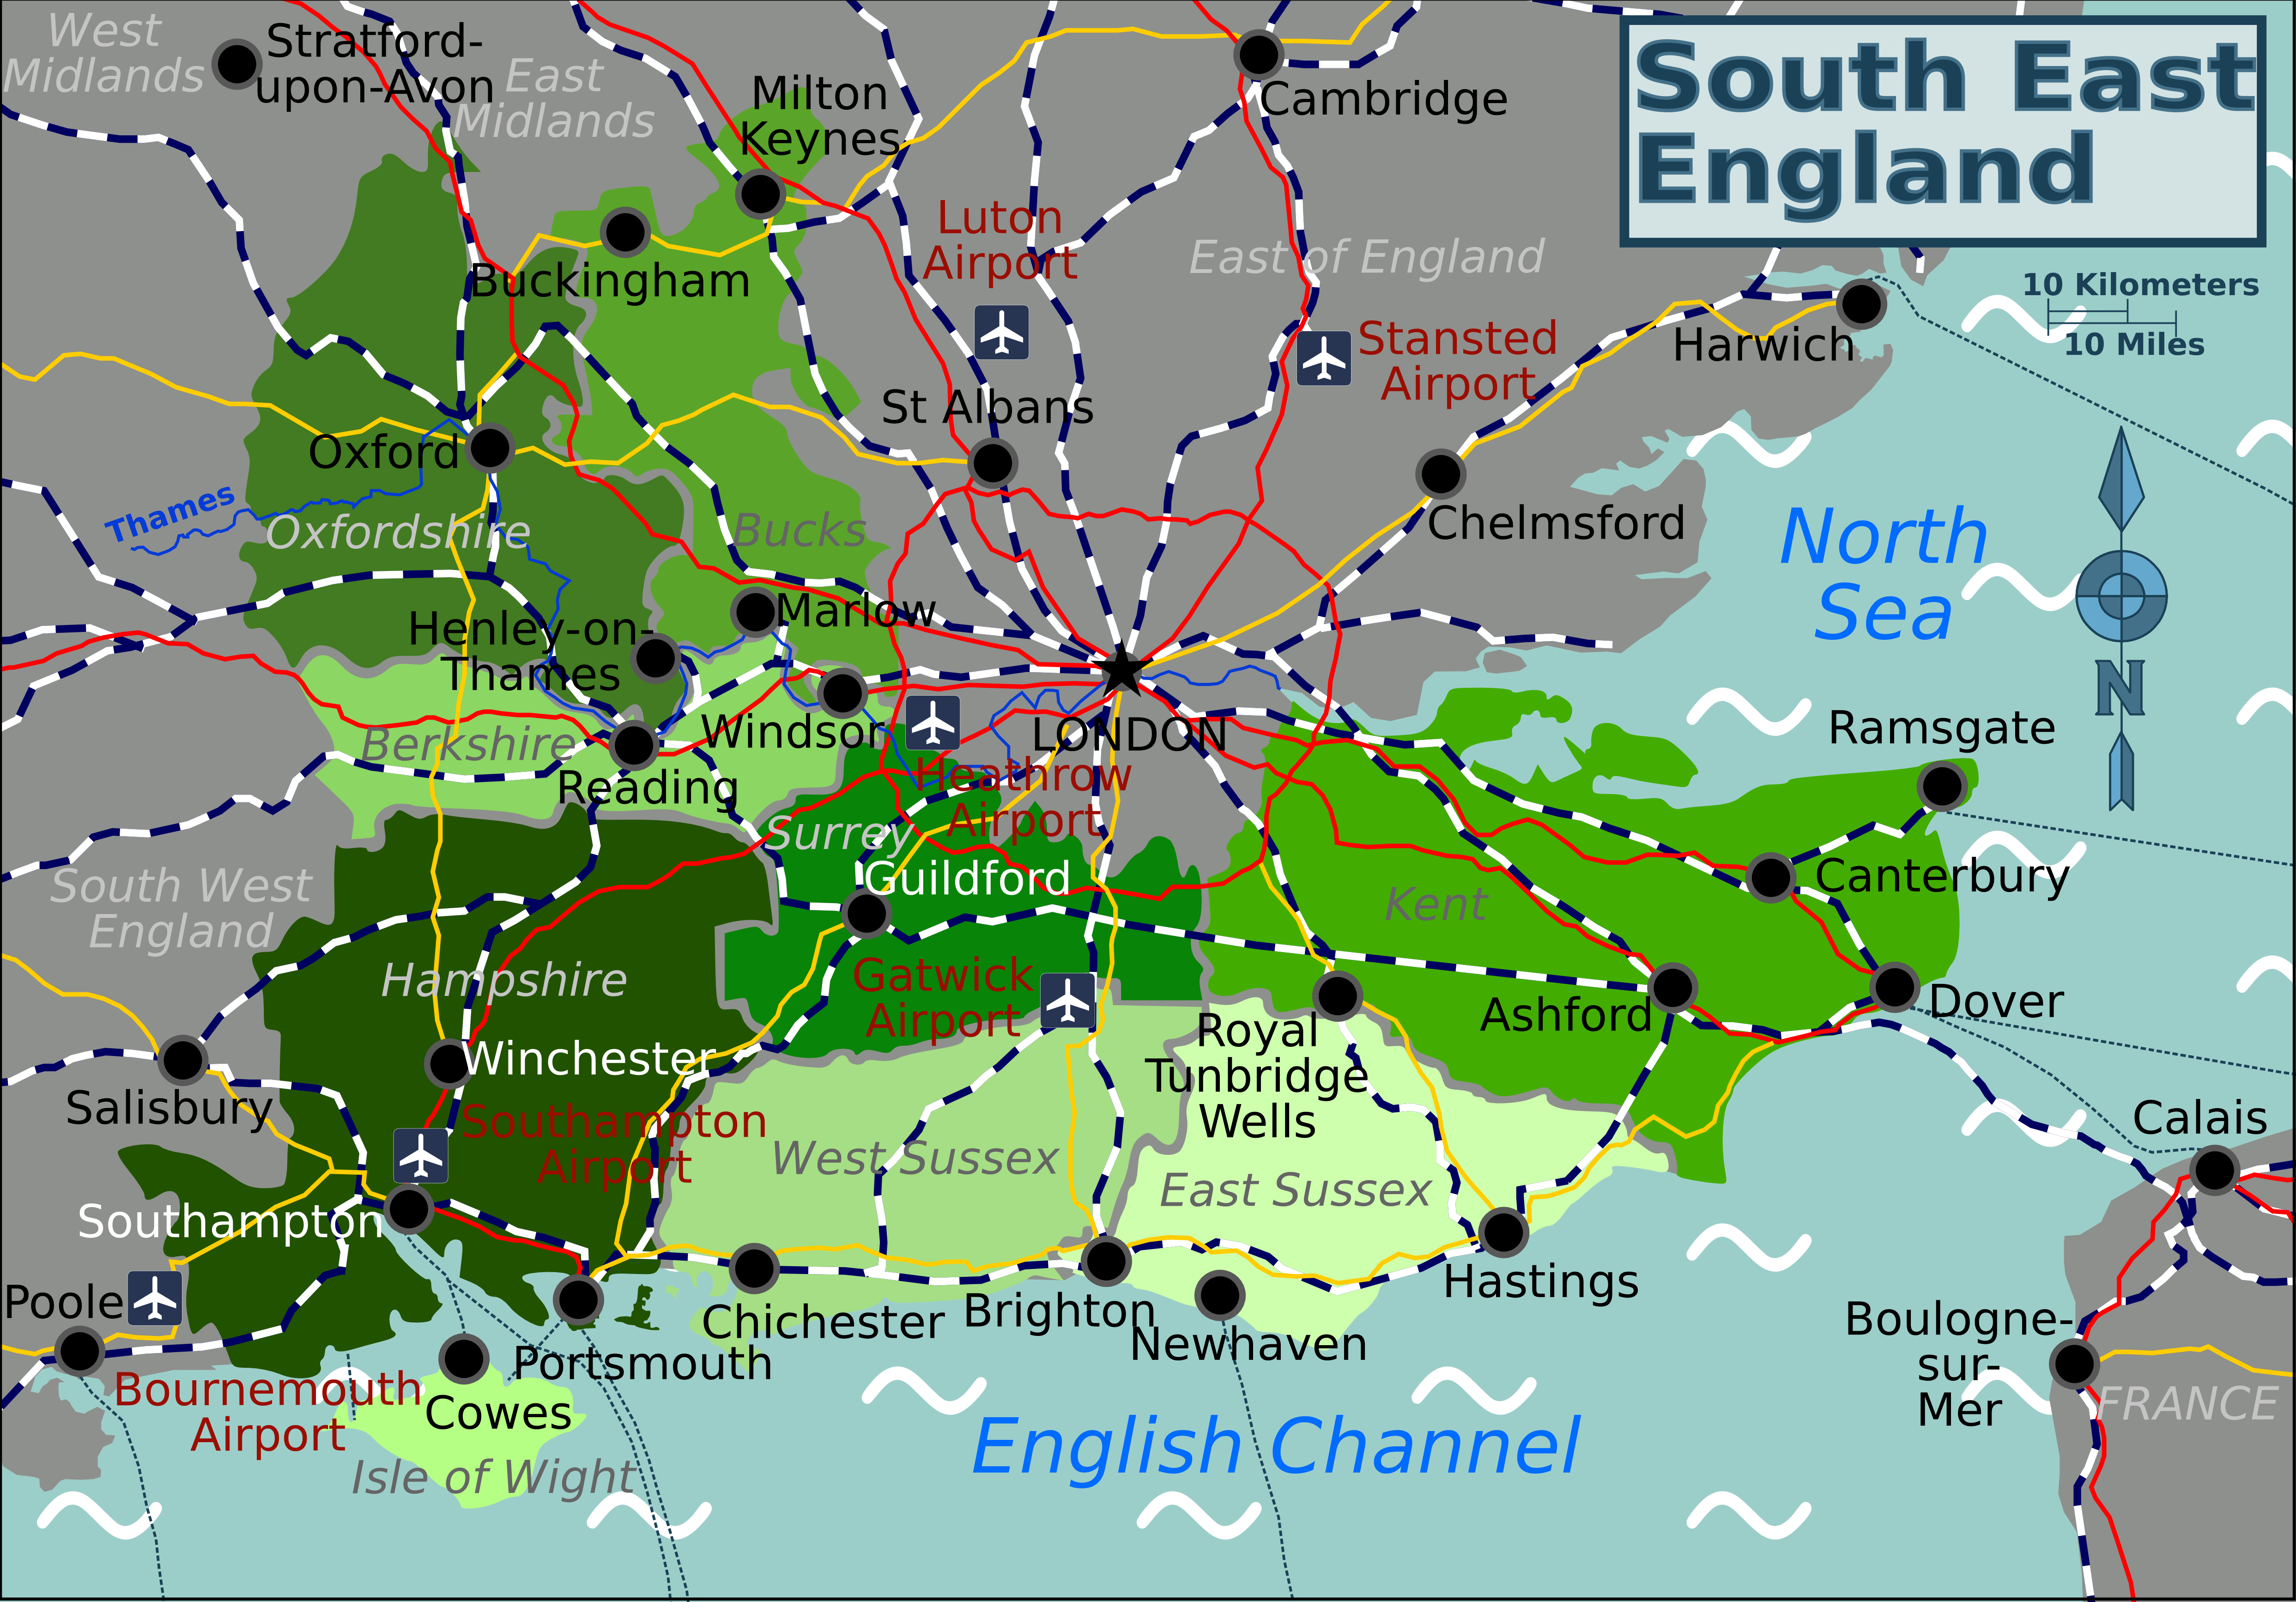 S E England Map.File South East England Map Png Wikimedia Commons